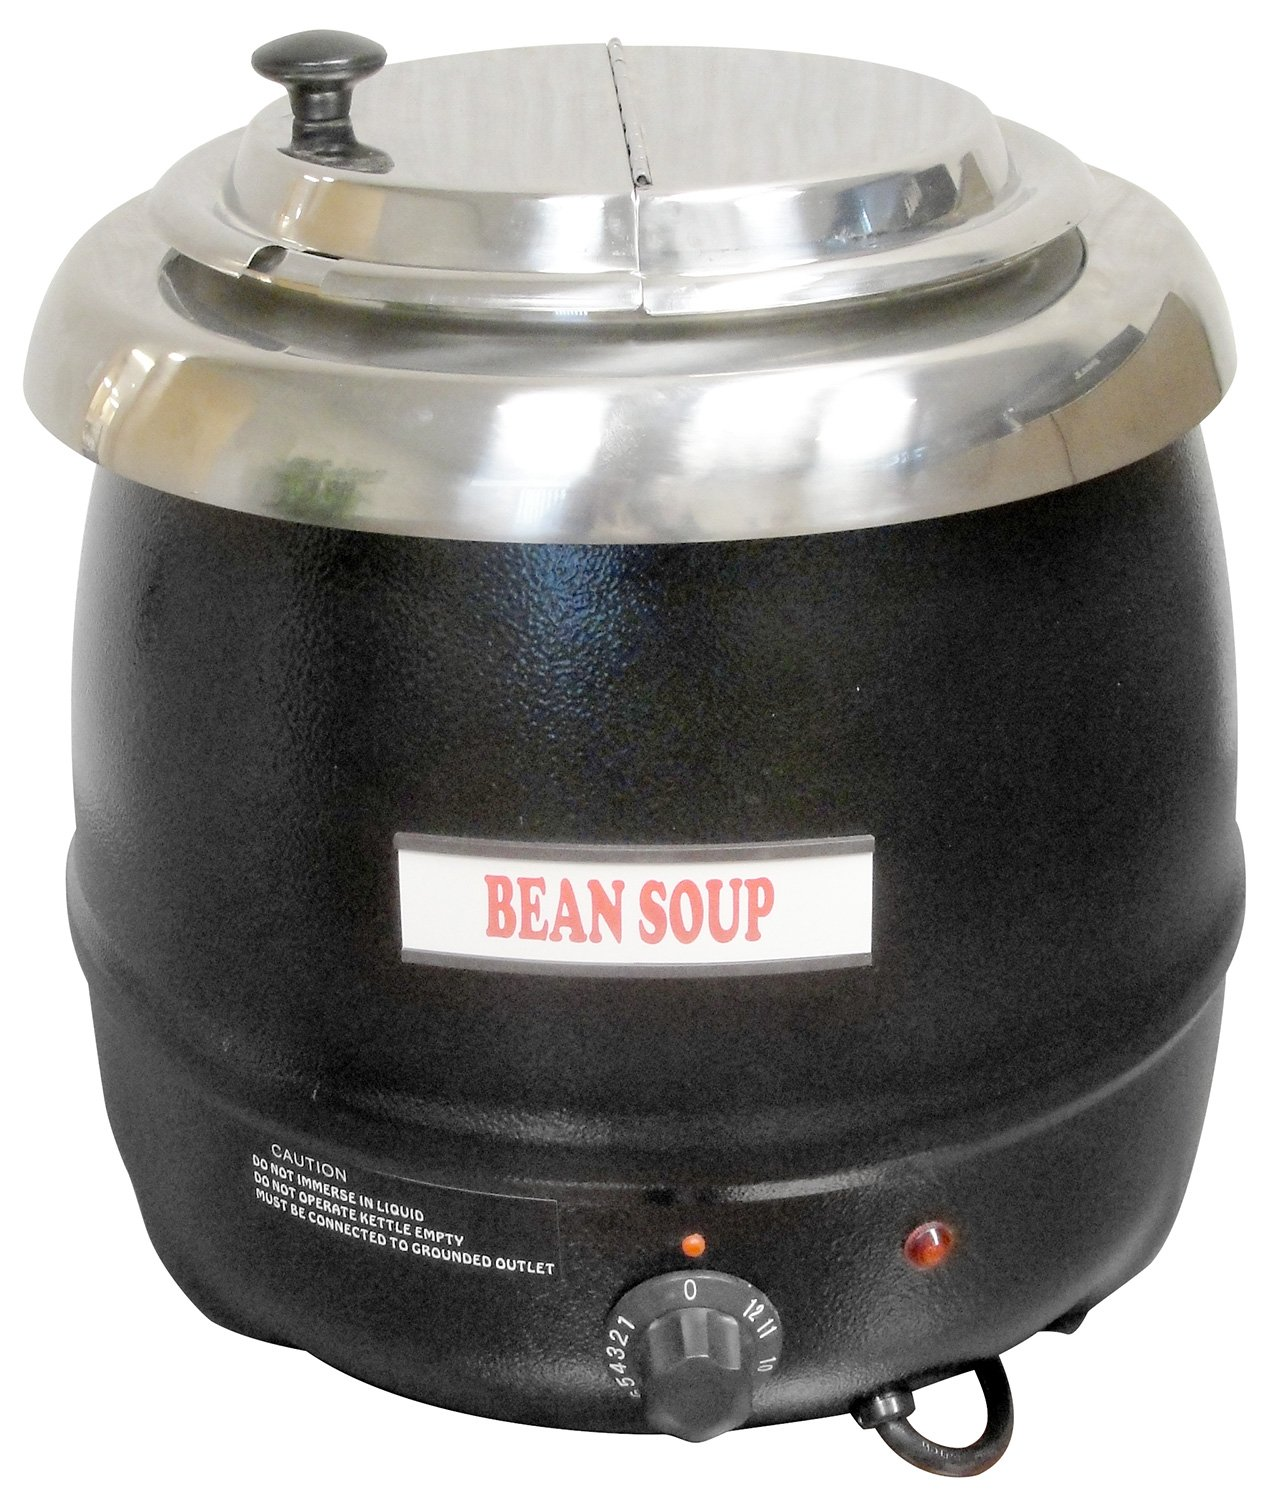 Commercial Electric Soup Kettle Warmer - 10.5 Quart